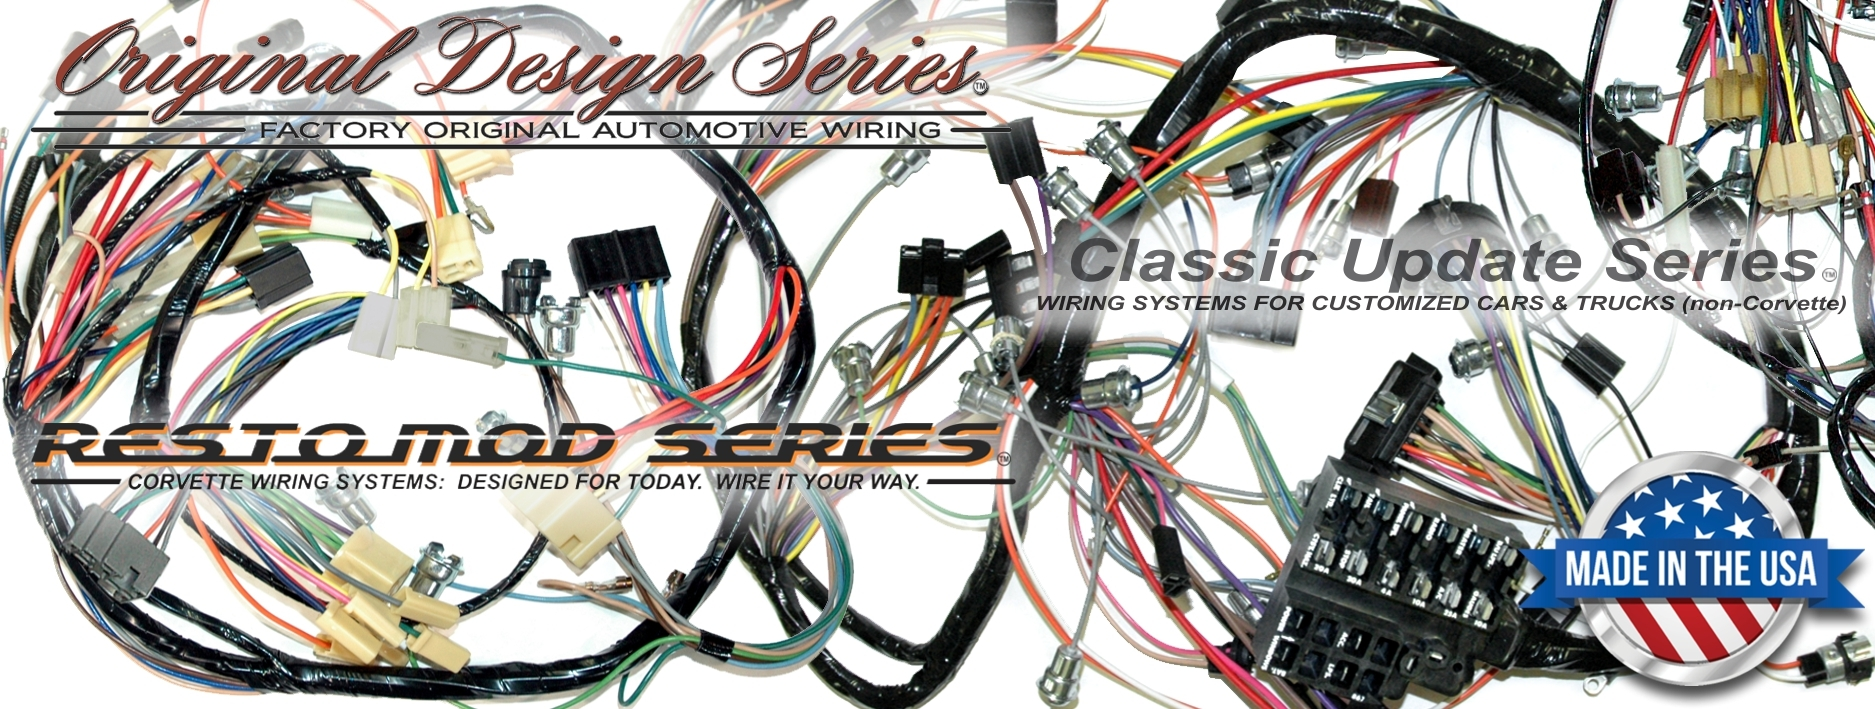 new header wiring_harnesses exact oem reproduction wiring harnesses and restomod wiring wire harness hardware for cabinets at bayanpartner.co